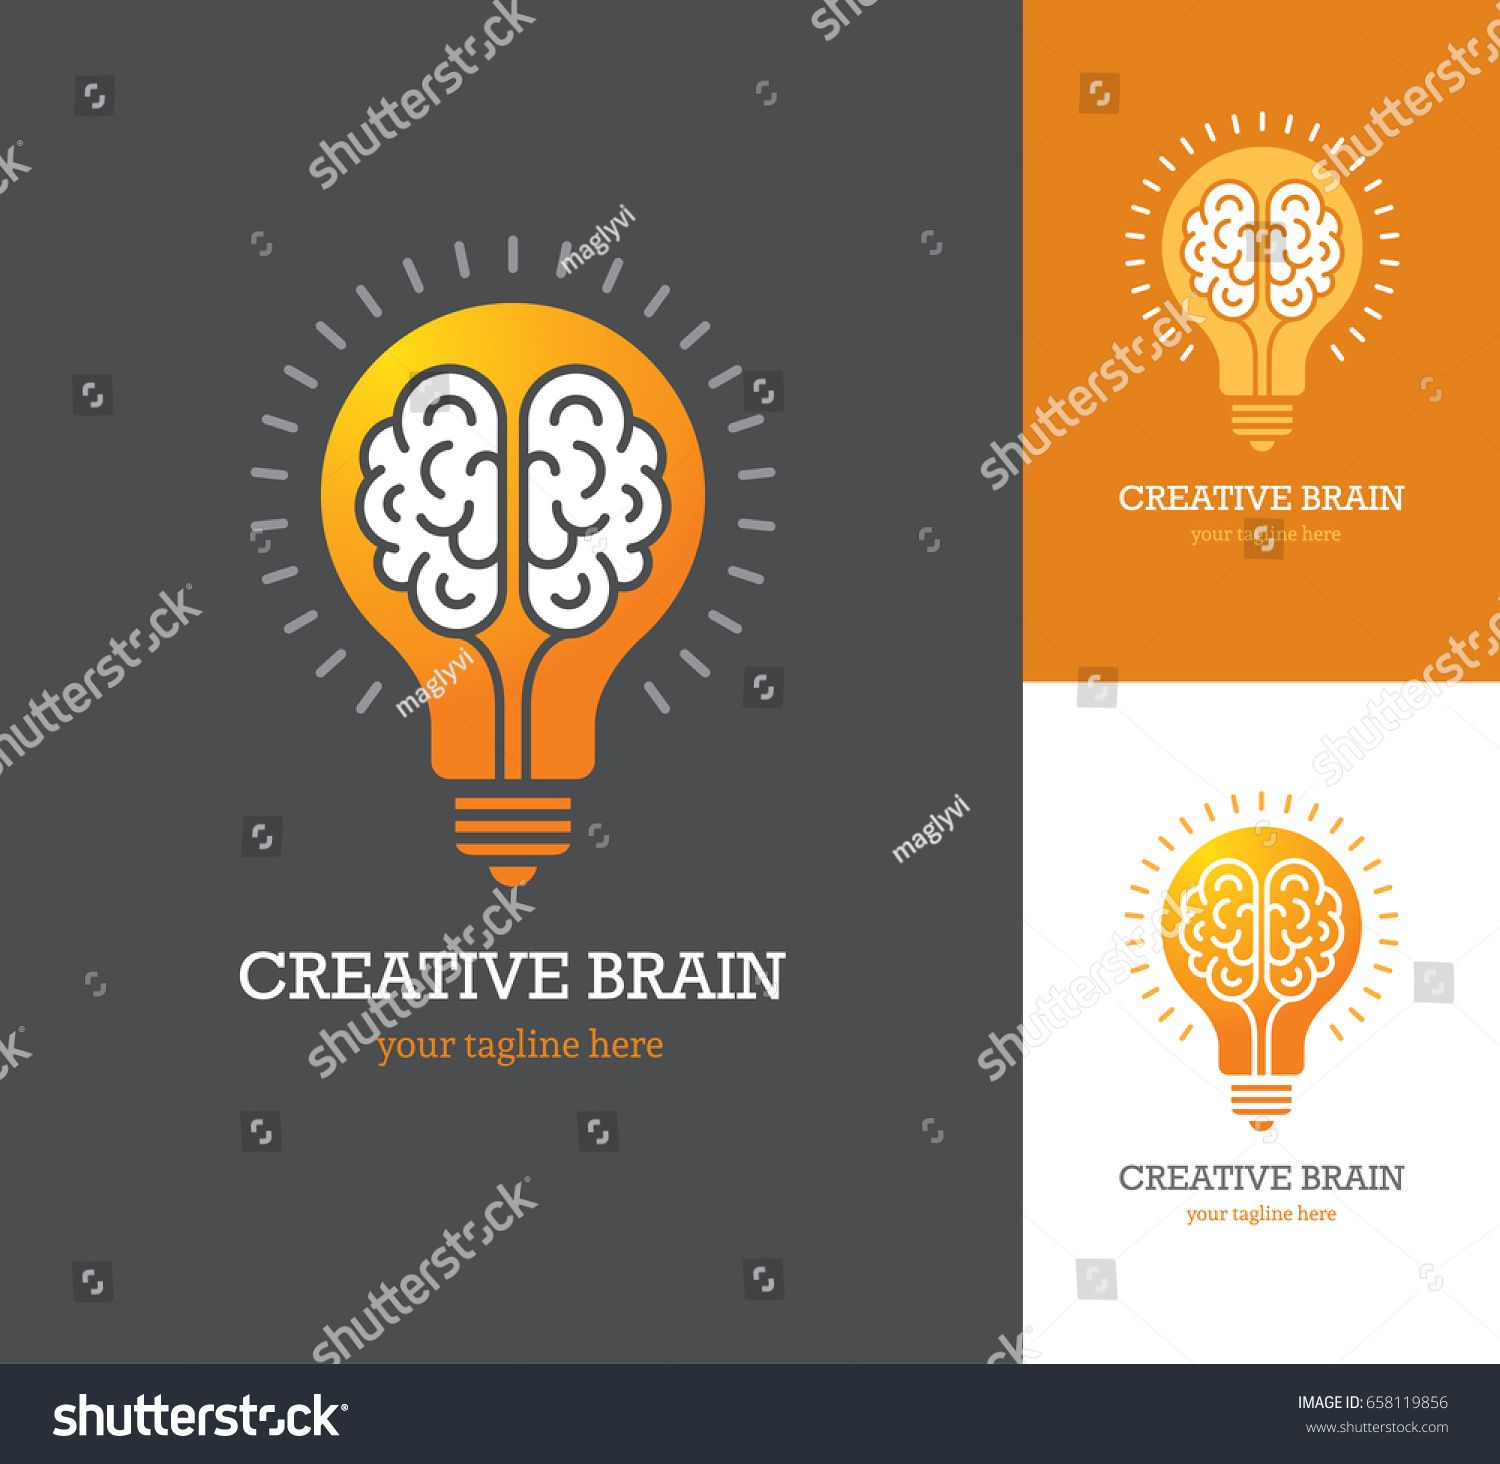 Bright logo with linear brain icon inside a light bulb Symbol of creative idea mind thinking